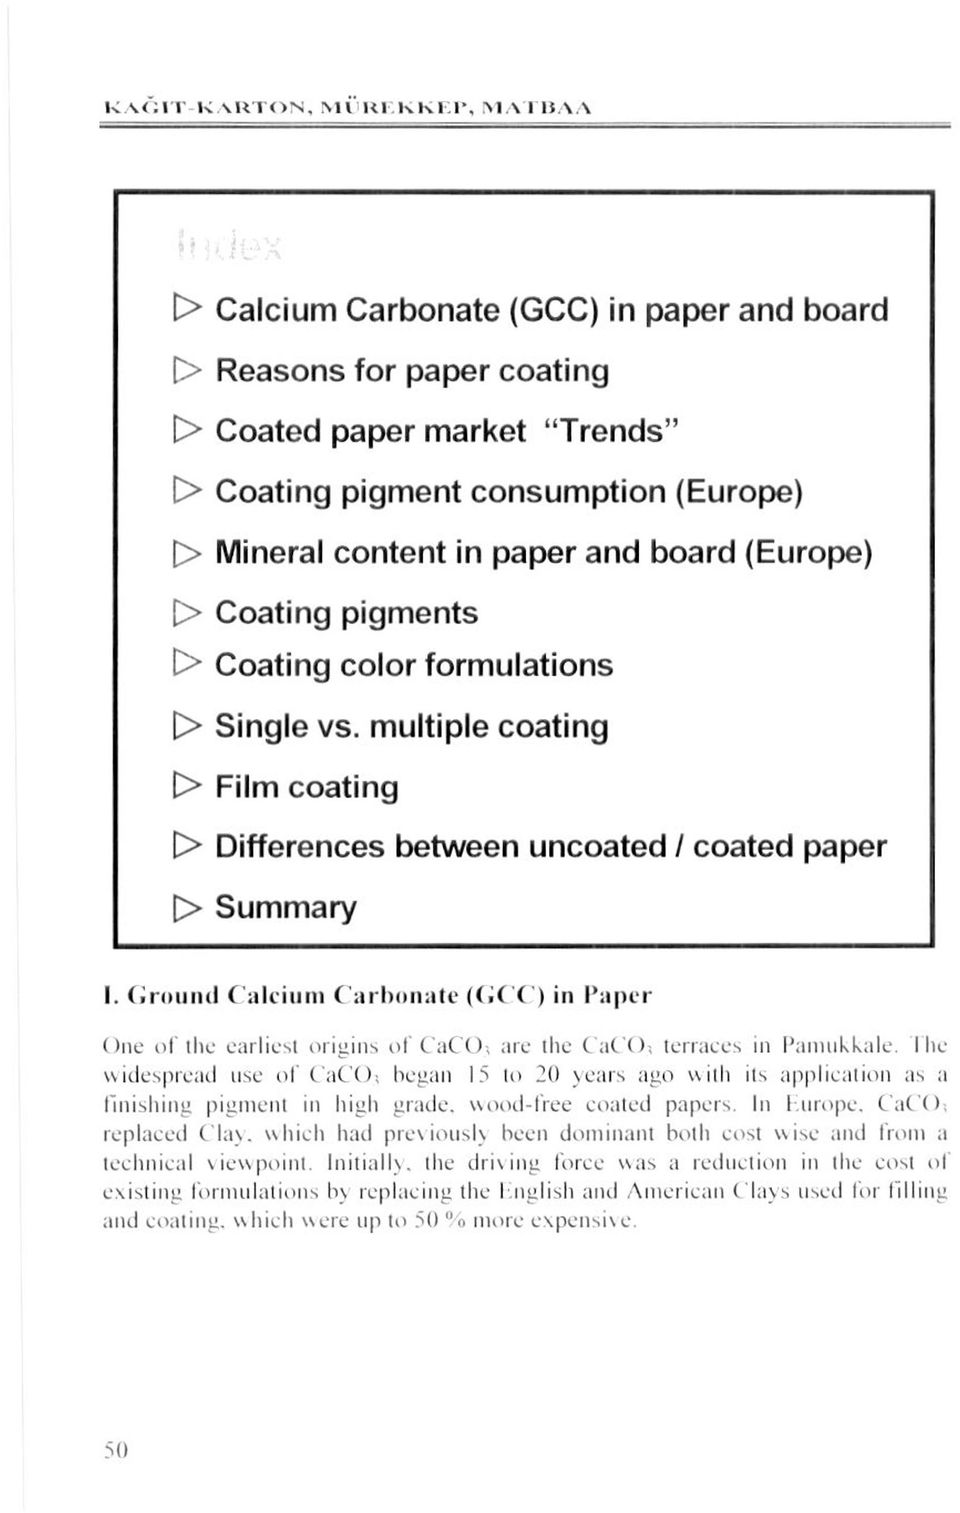 (Europe) > Coating pigments O Coating color formulations t> Single vs. multiple coating t> Film coating t> Differences between uncoated / coated paper [> Summary I.